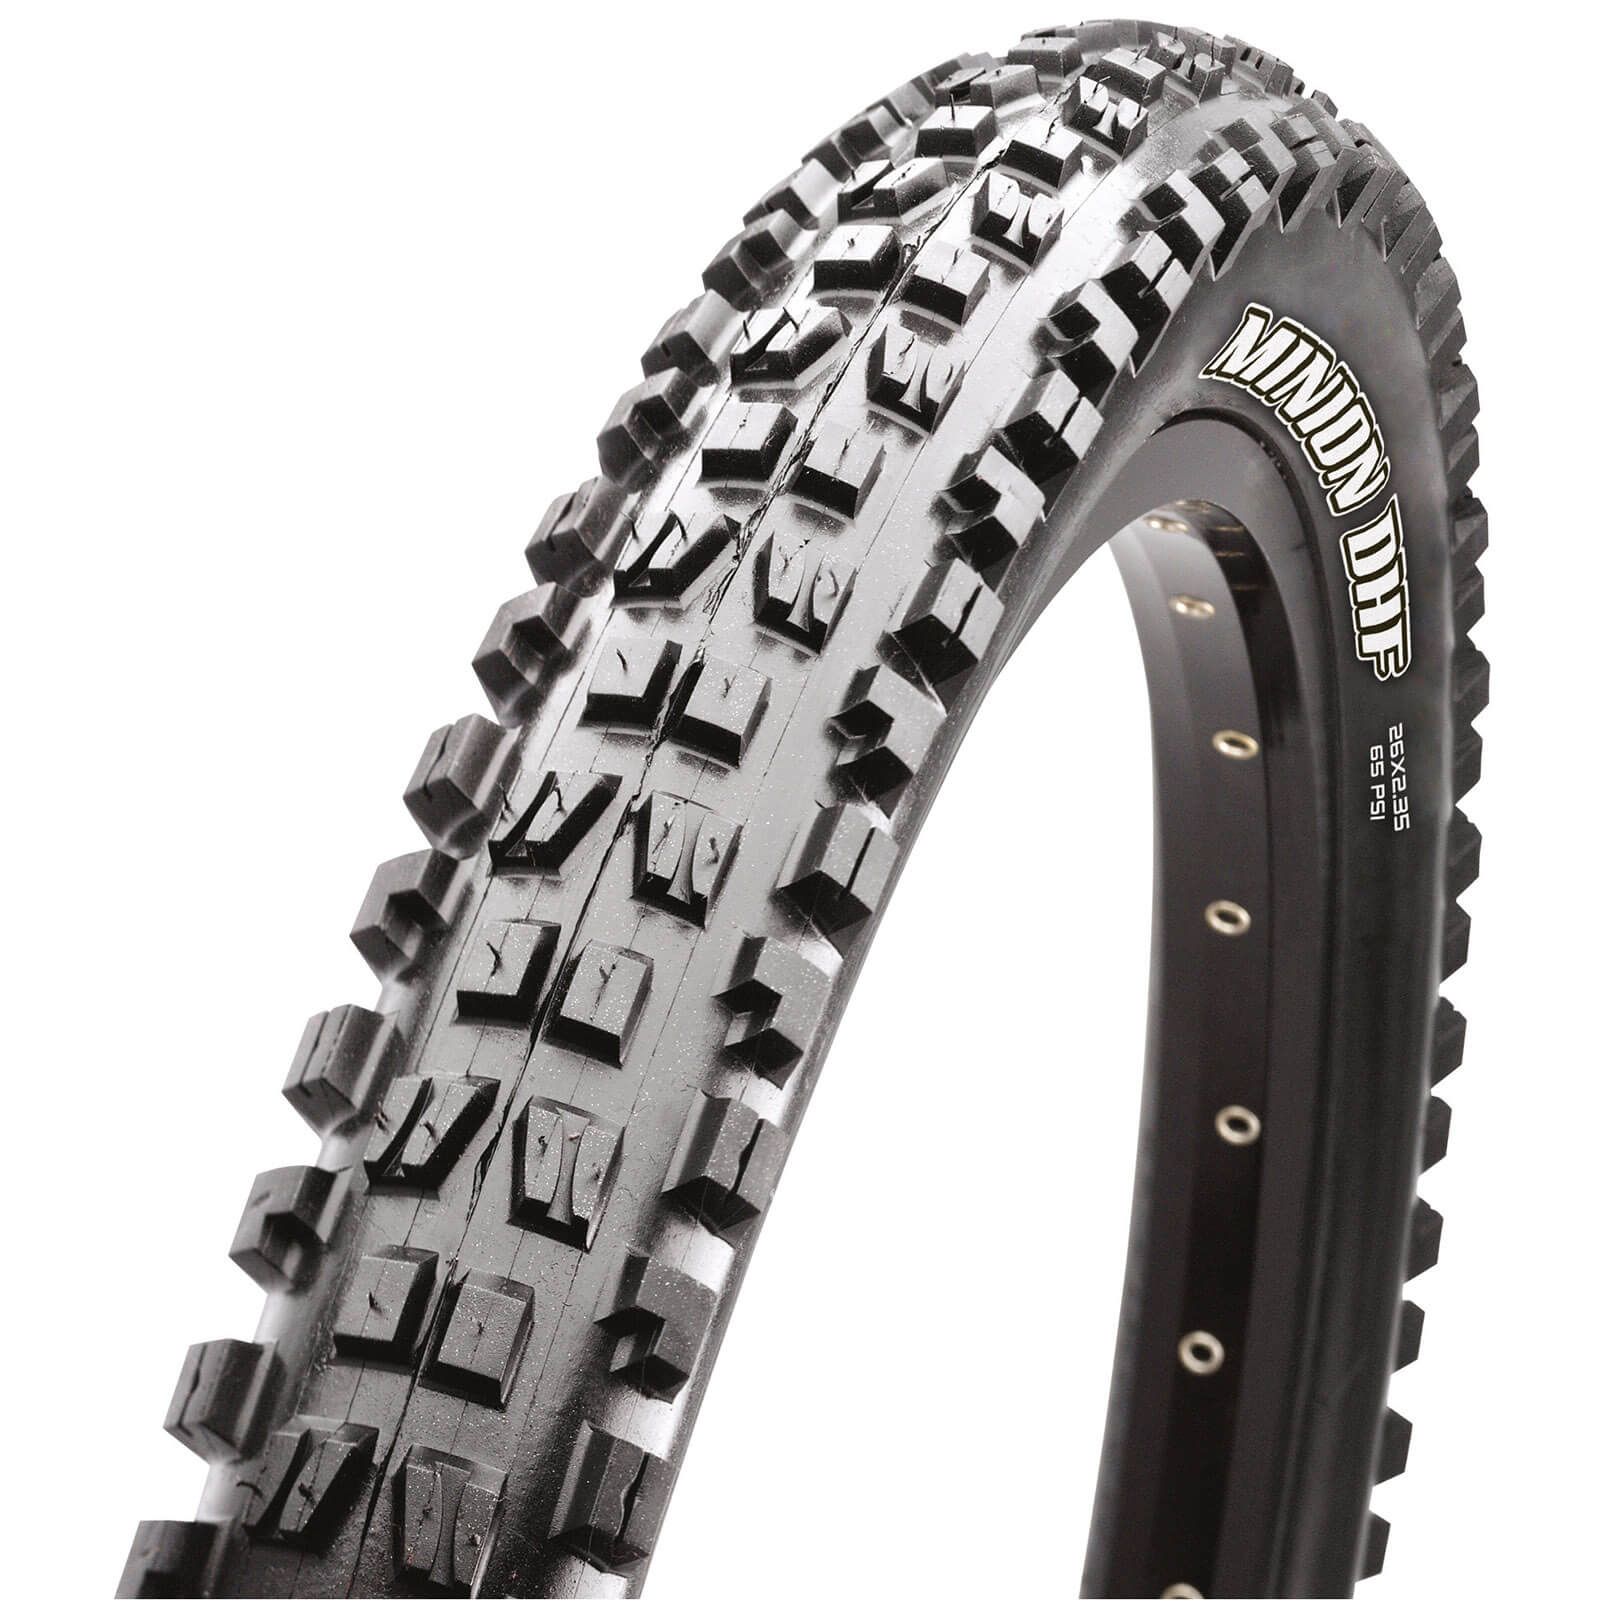 Maxxis Minion DHF Folding 3C TR EXO+ Tyre - 29in x 2.50in